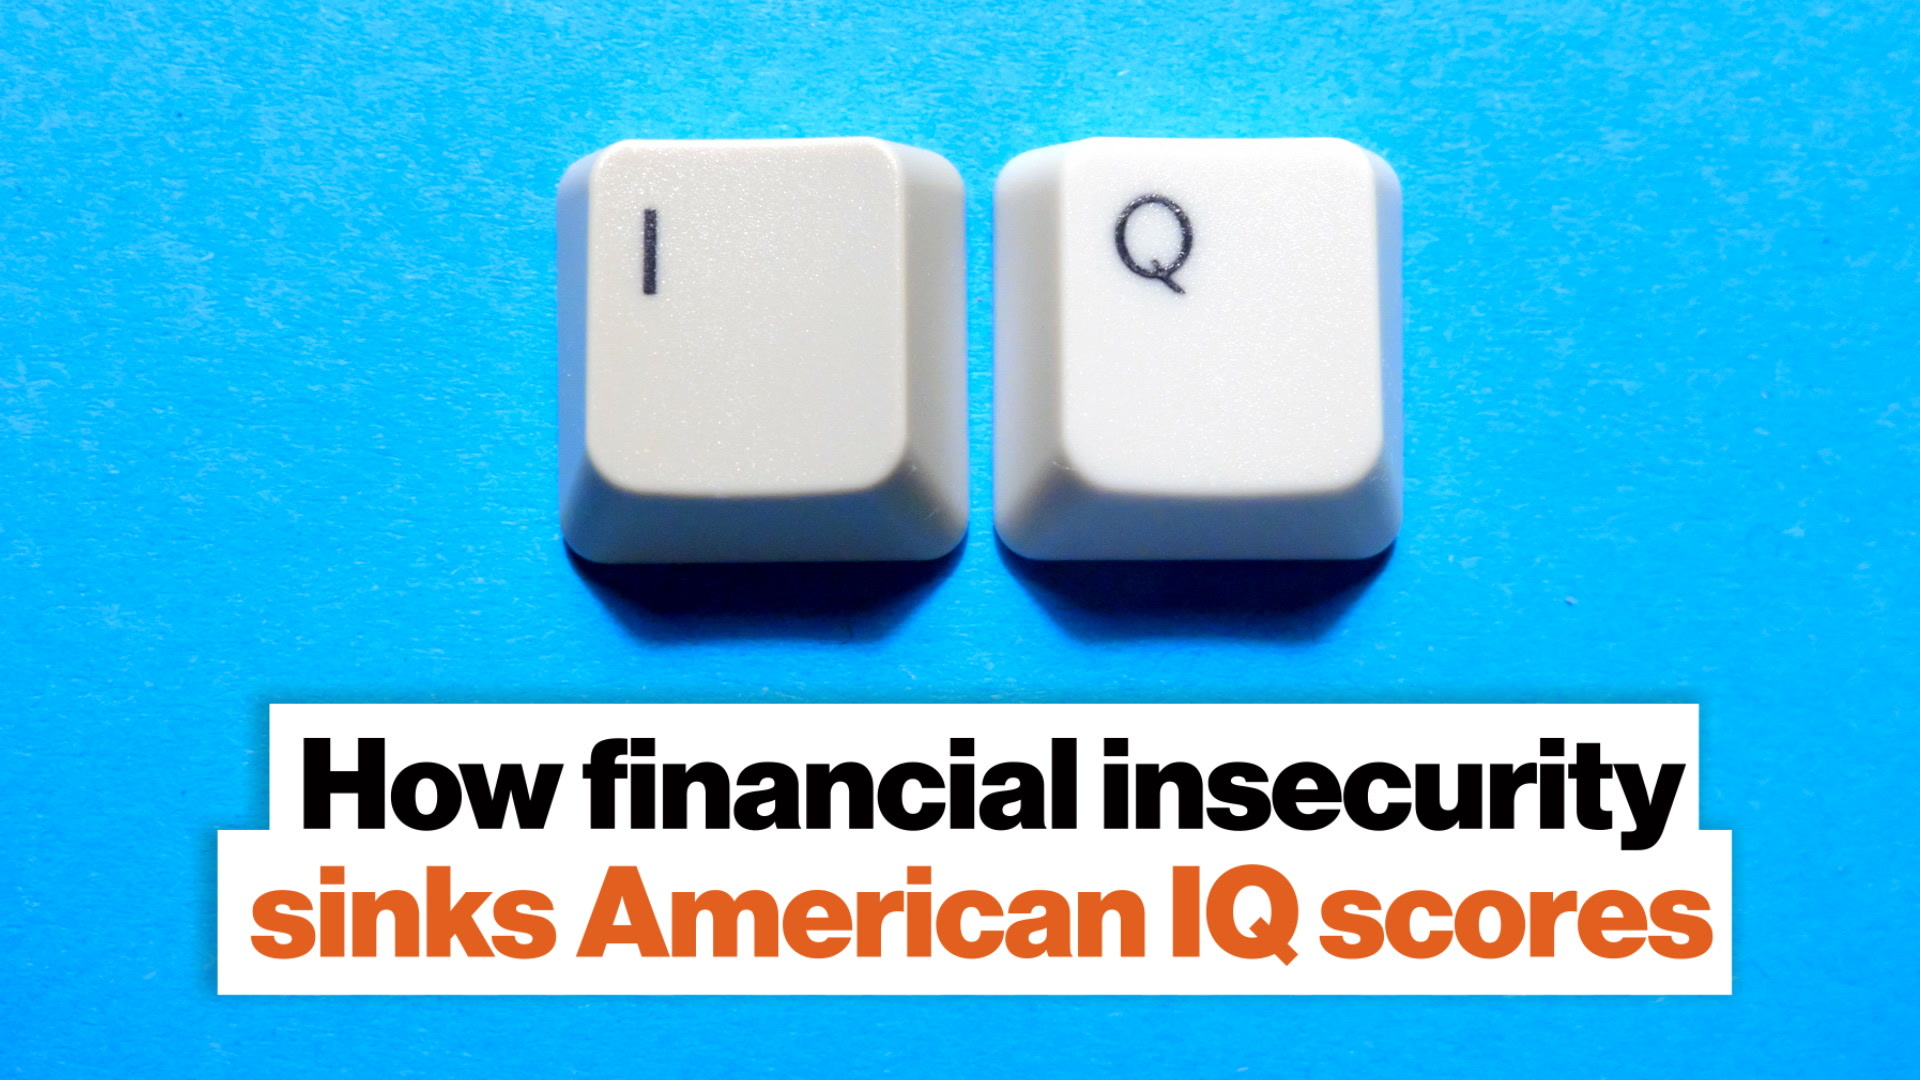 How financial insecurity sinks American IQ scores